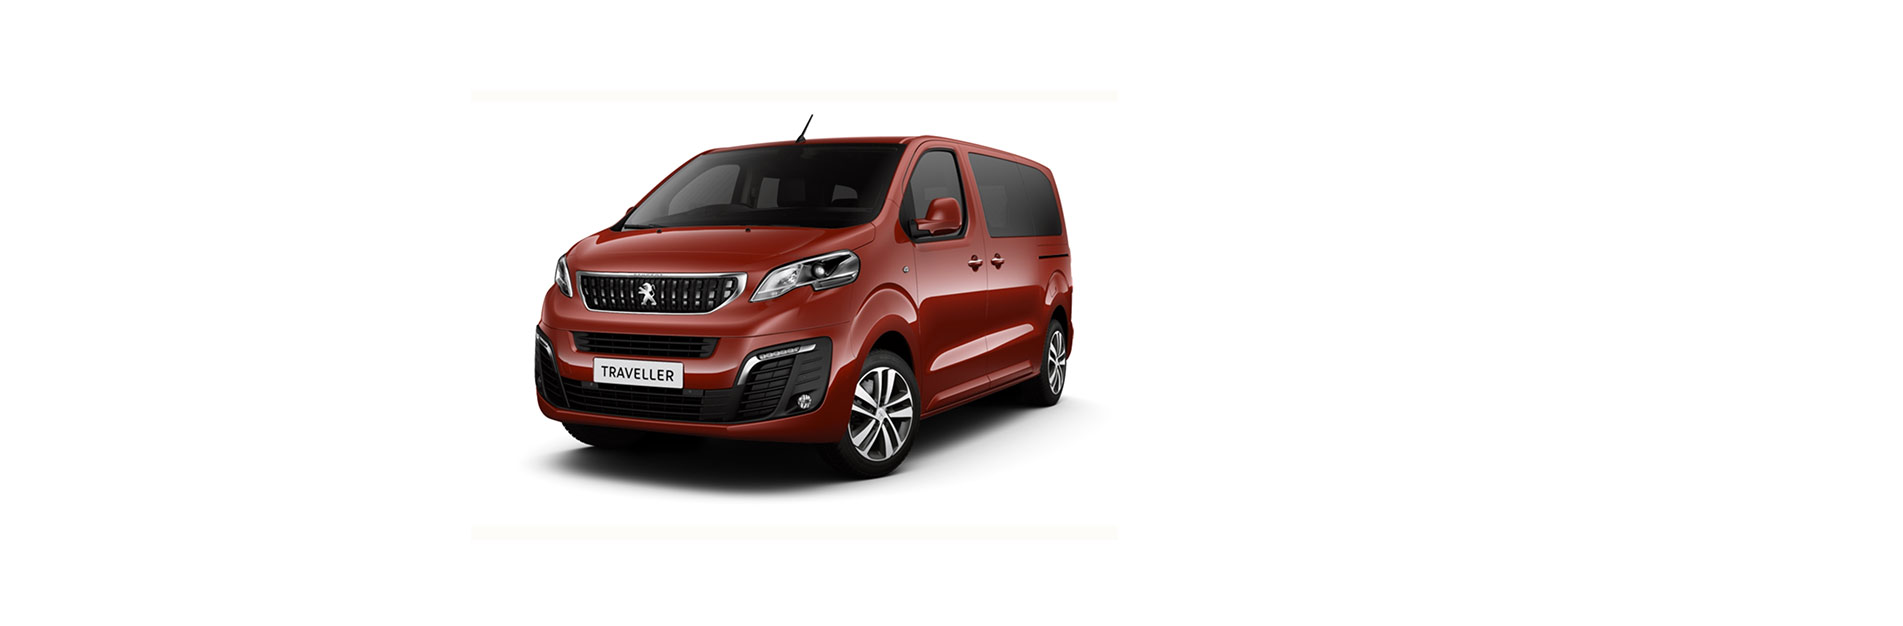 peugeot-traveller-new-car-sales-head